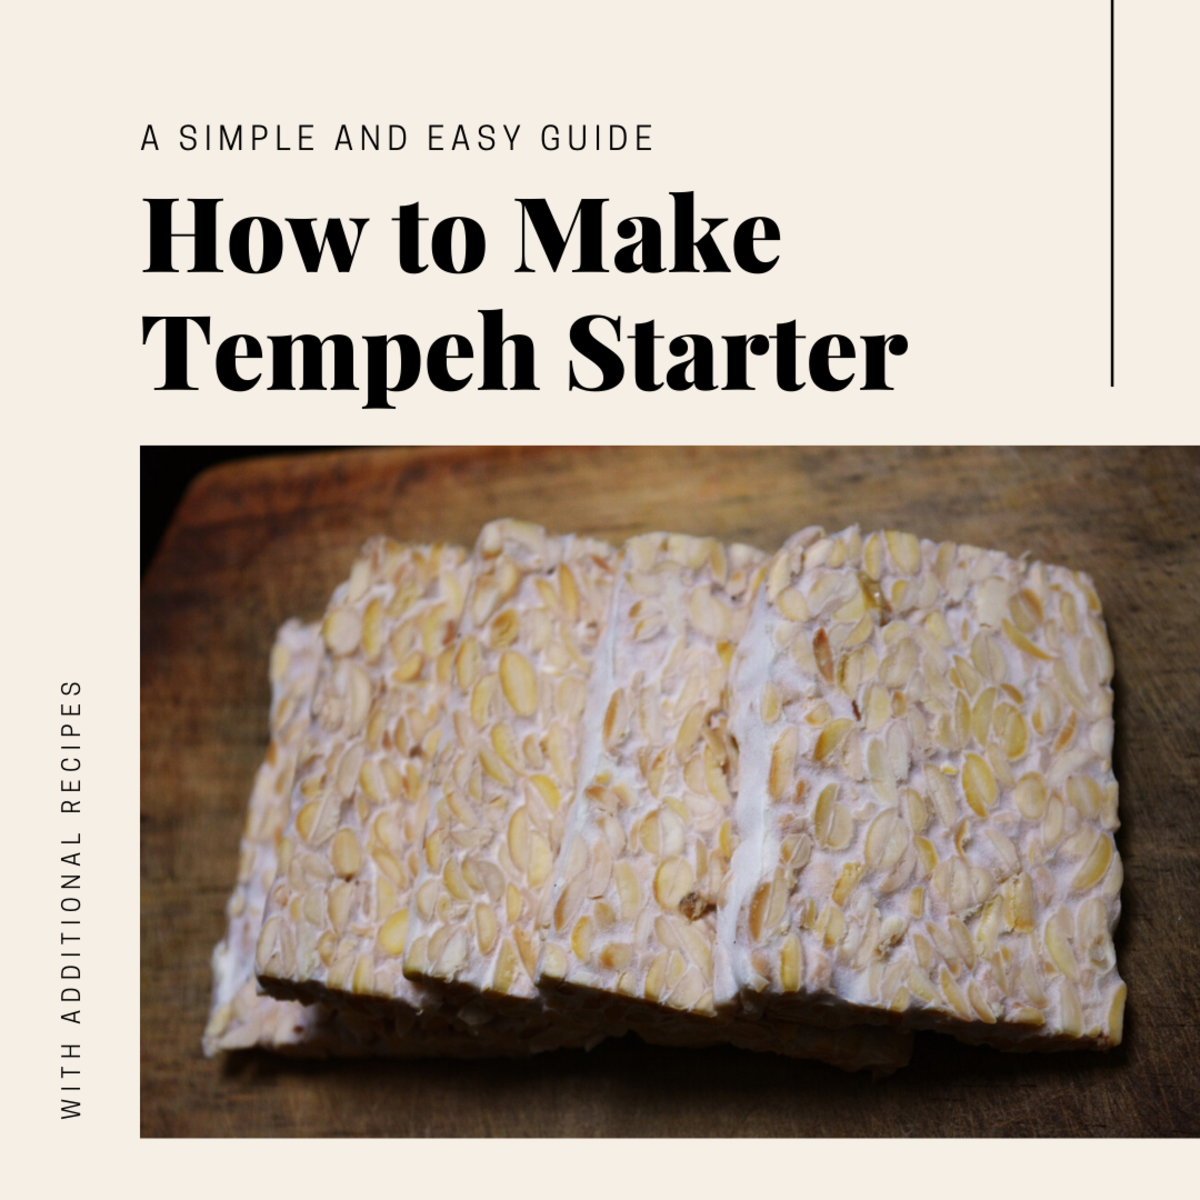 This guide will show you how to make your own tempeh starter and also provide recipes and tips for how to incorporate the versatile meat substitute into your cooking.